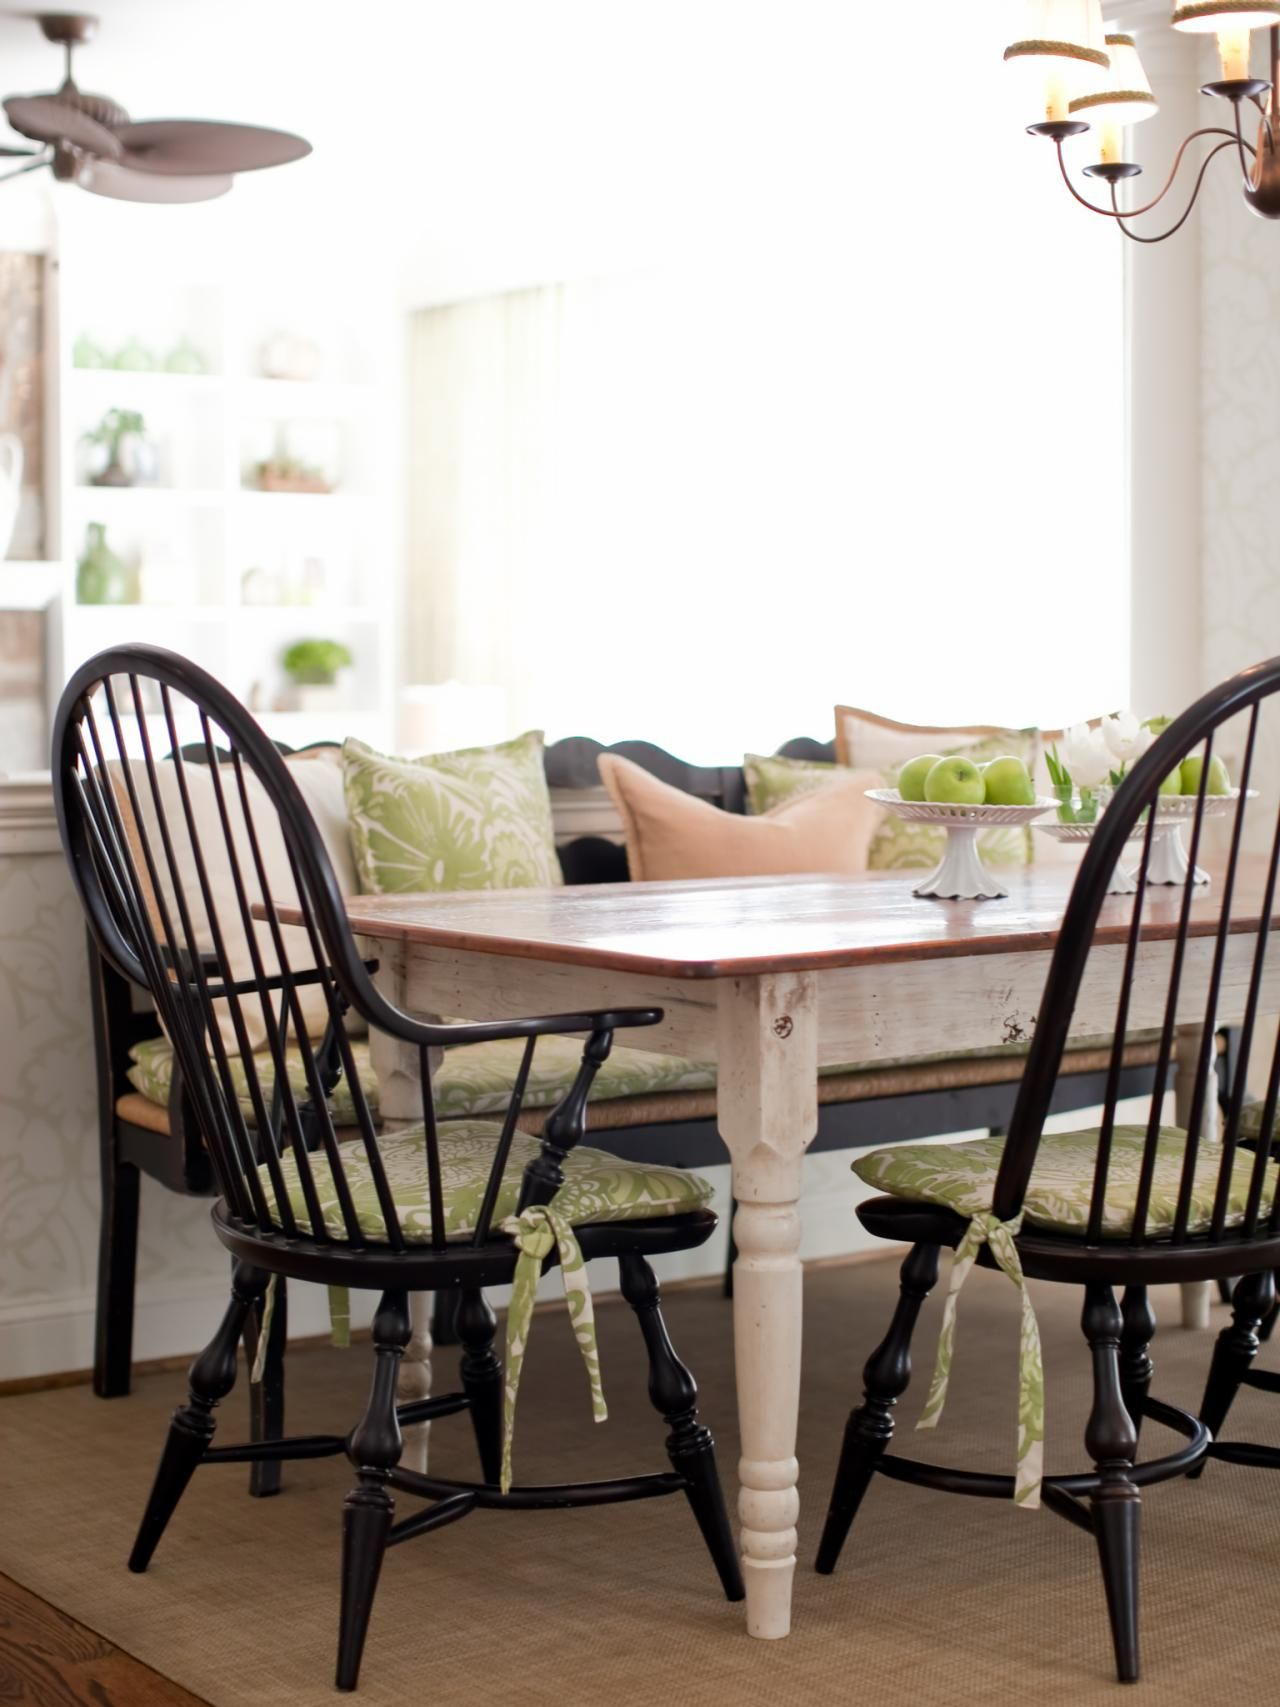 This country dining setting features a farmhouse table with black ...